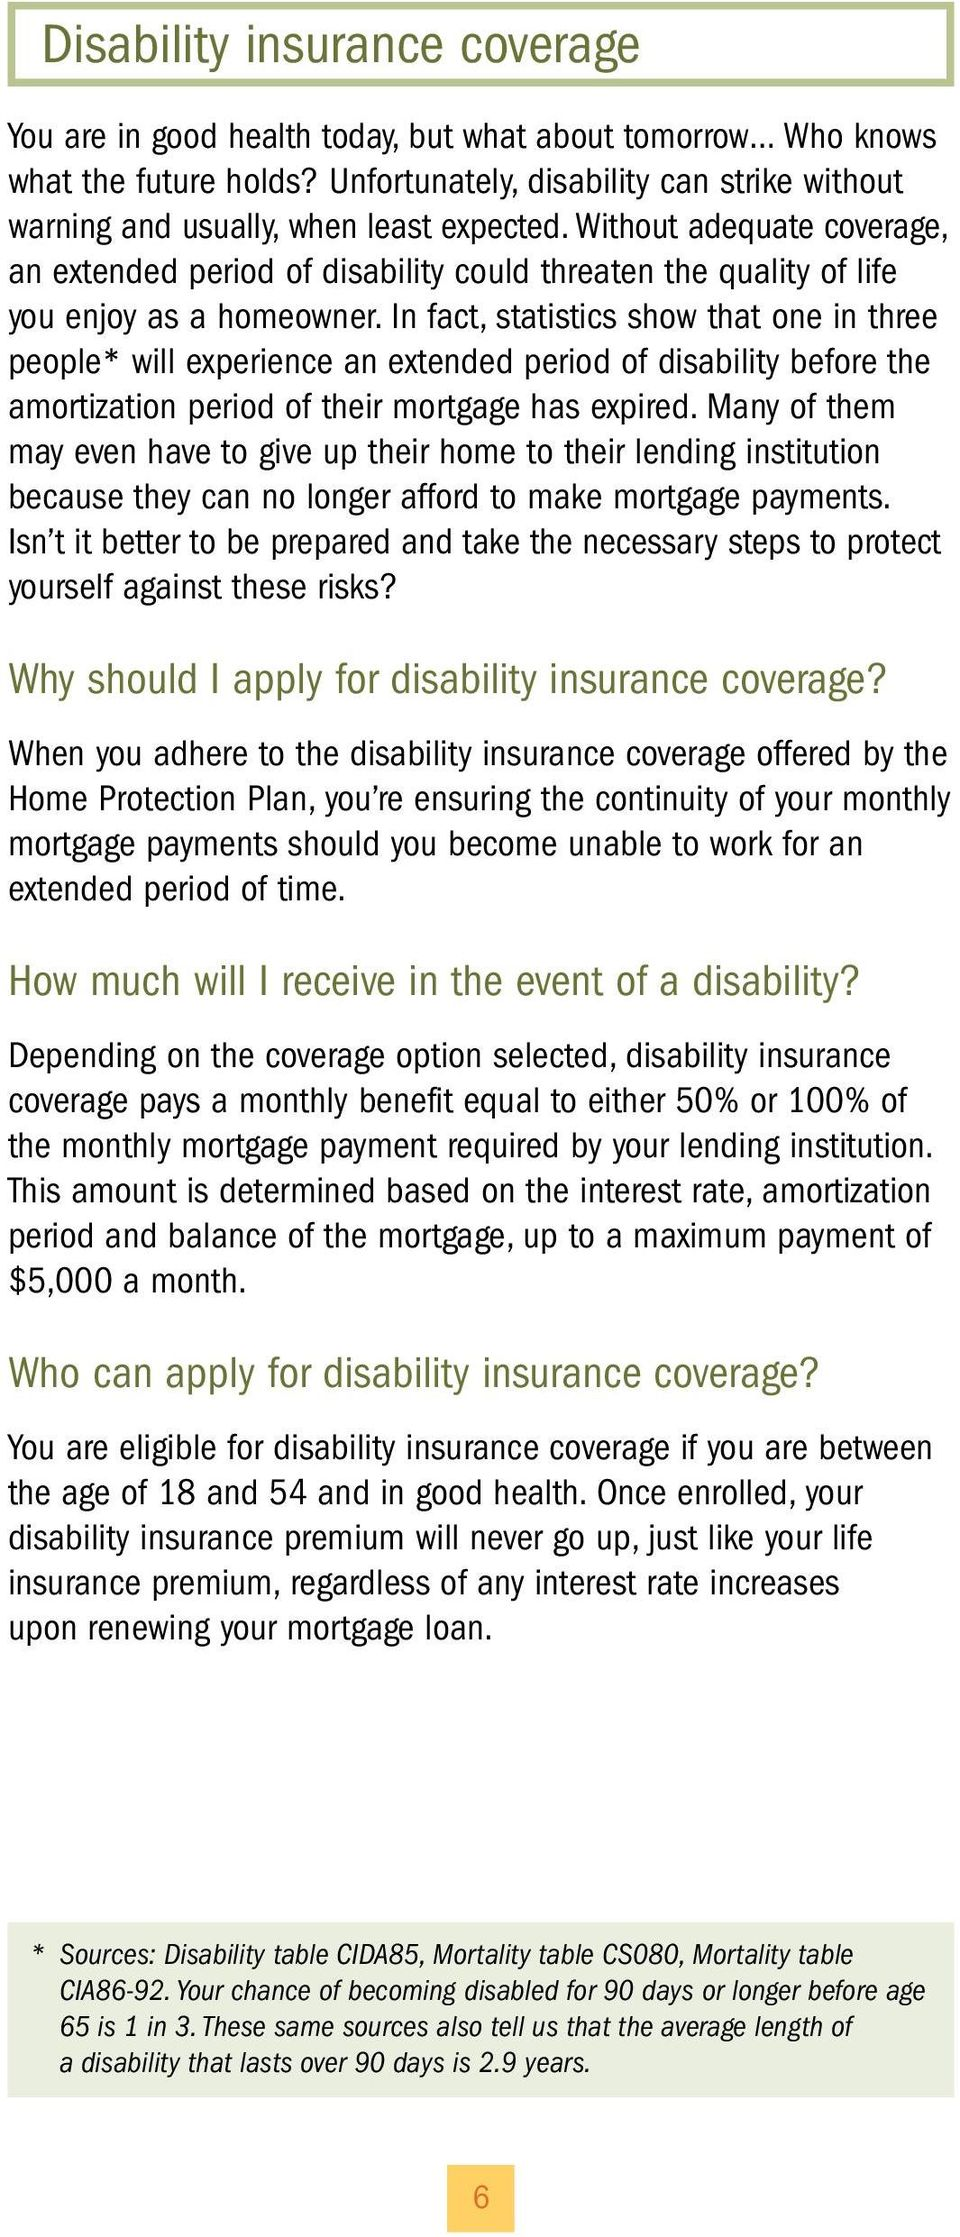 Without adequate coverage, an extended period of disability could threaten the quality of life you enjoy as a homeowner.